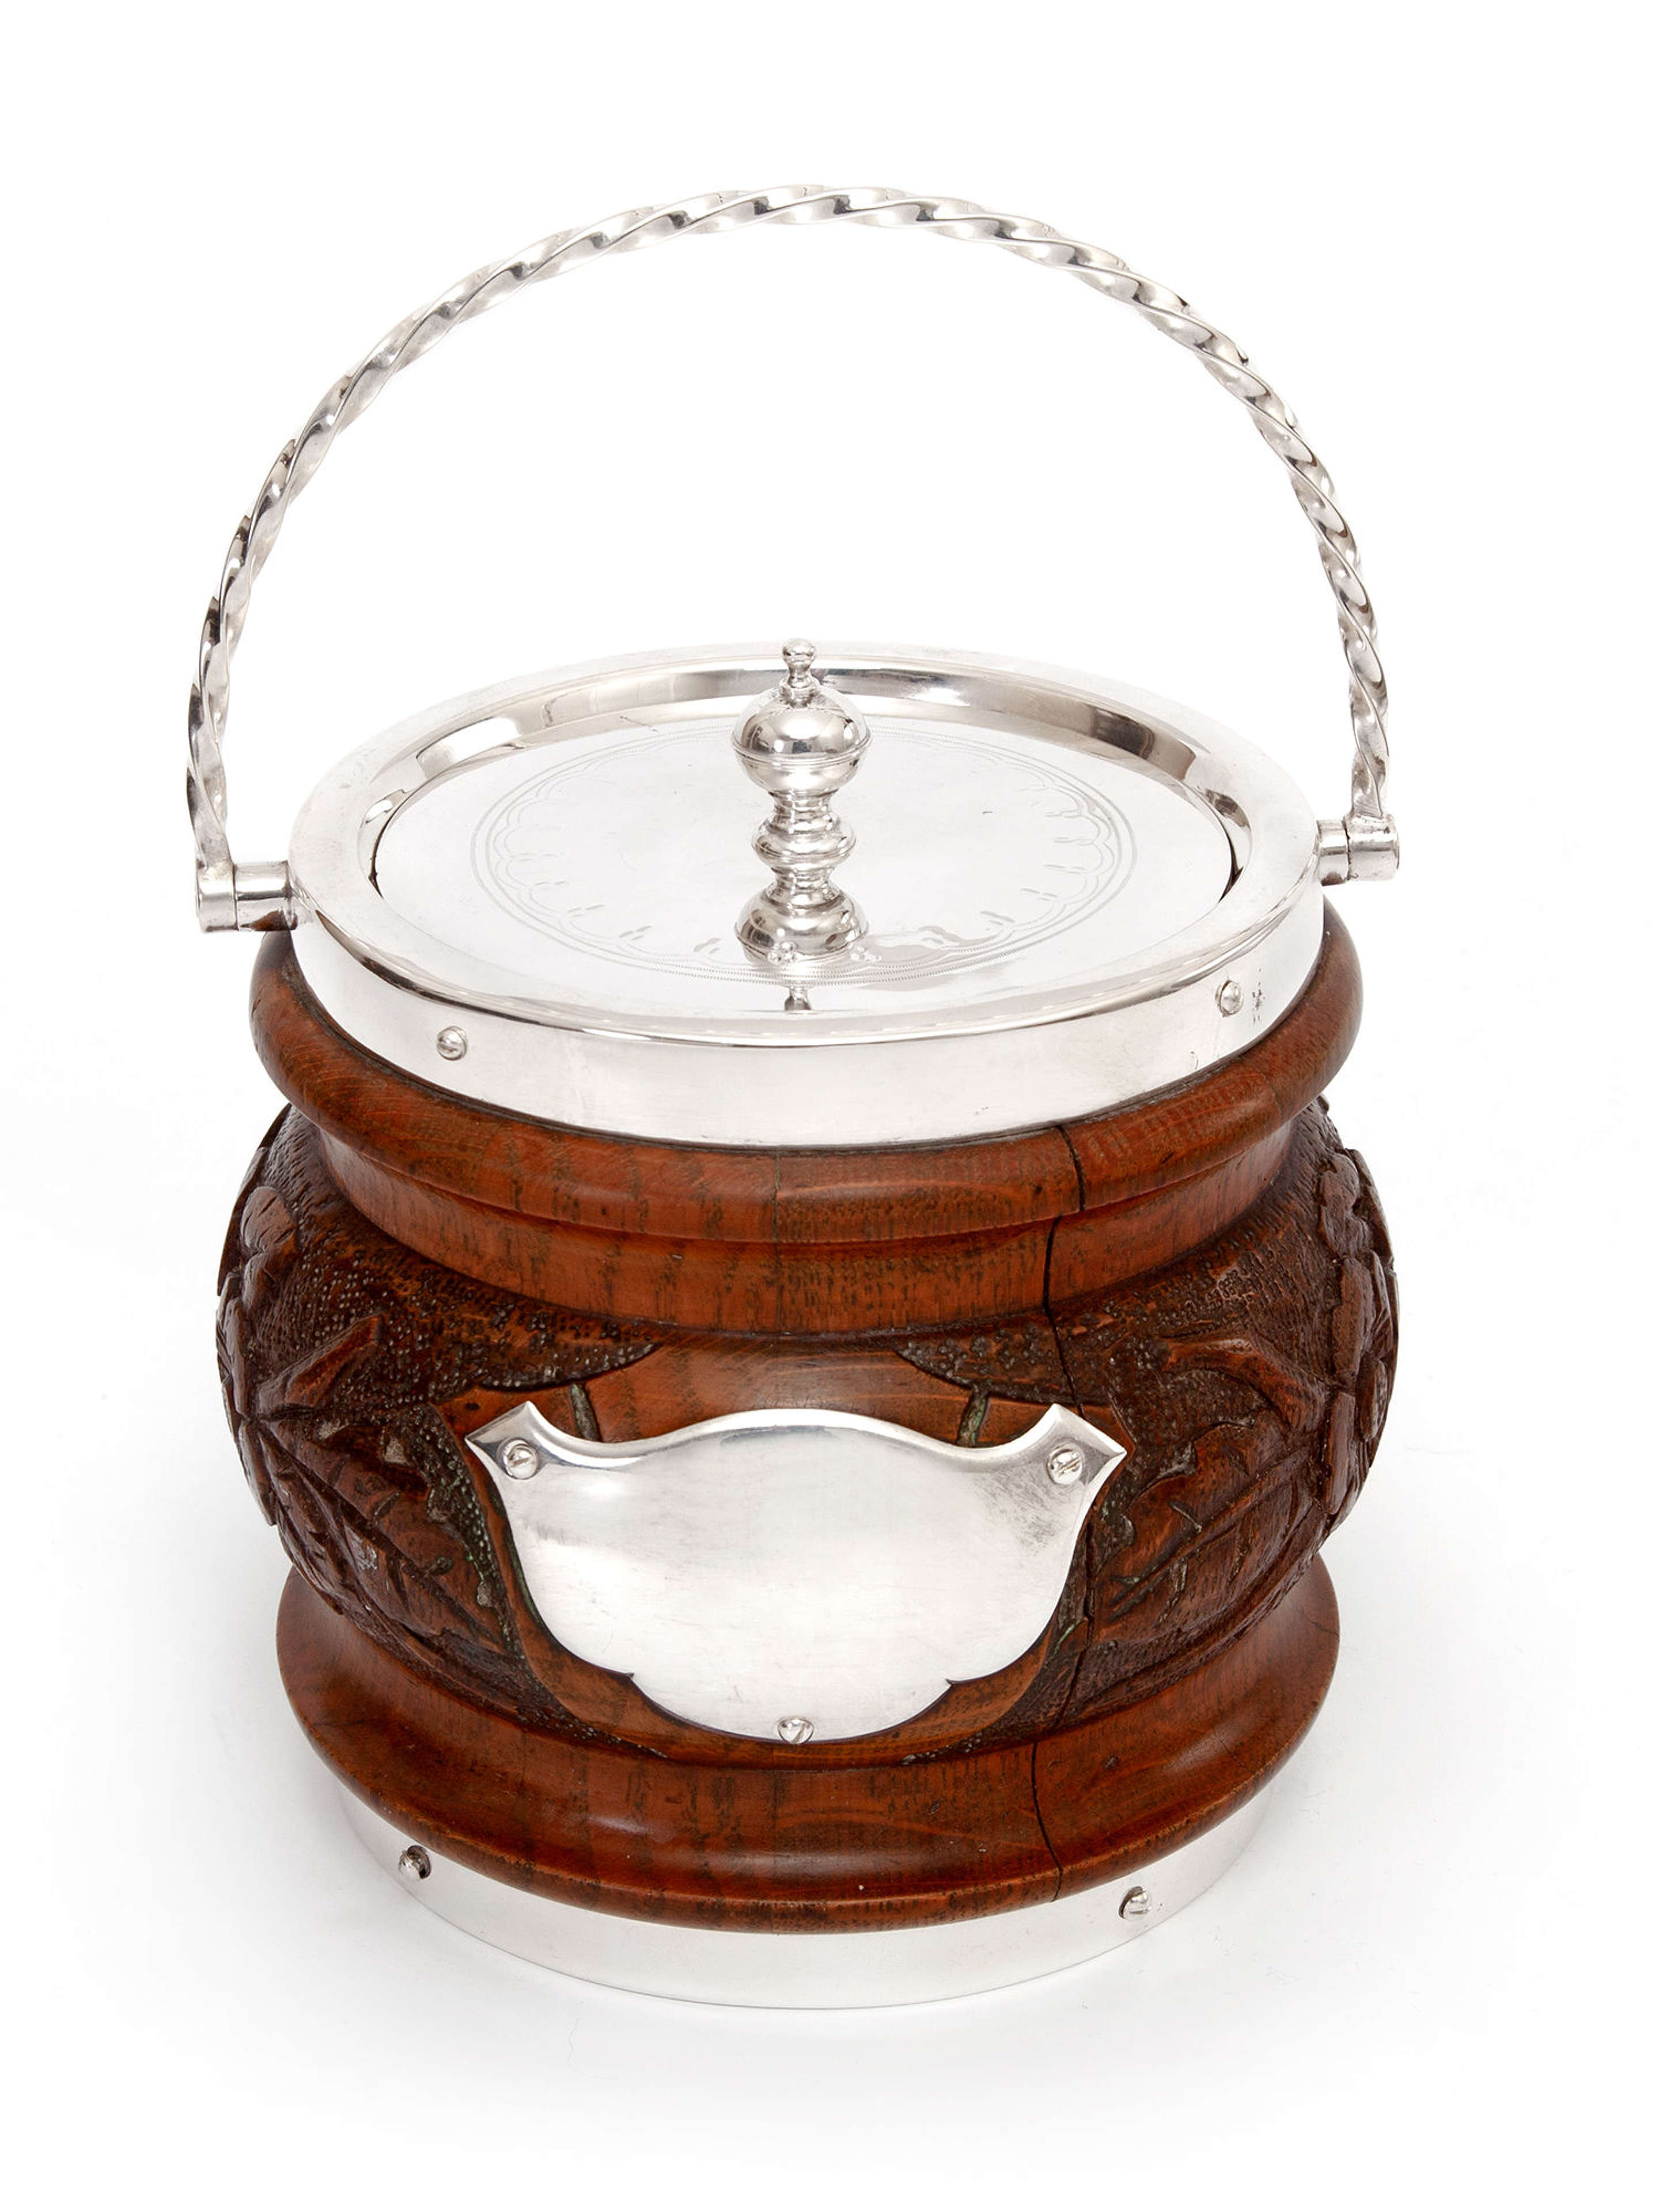 Antique Oak and Silver Plated Barrel with a White China Lining